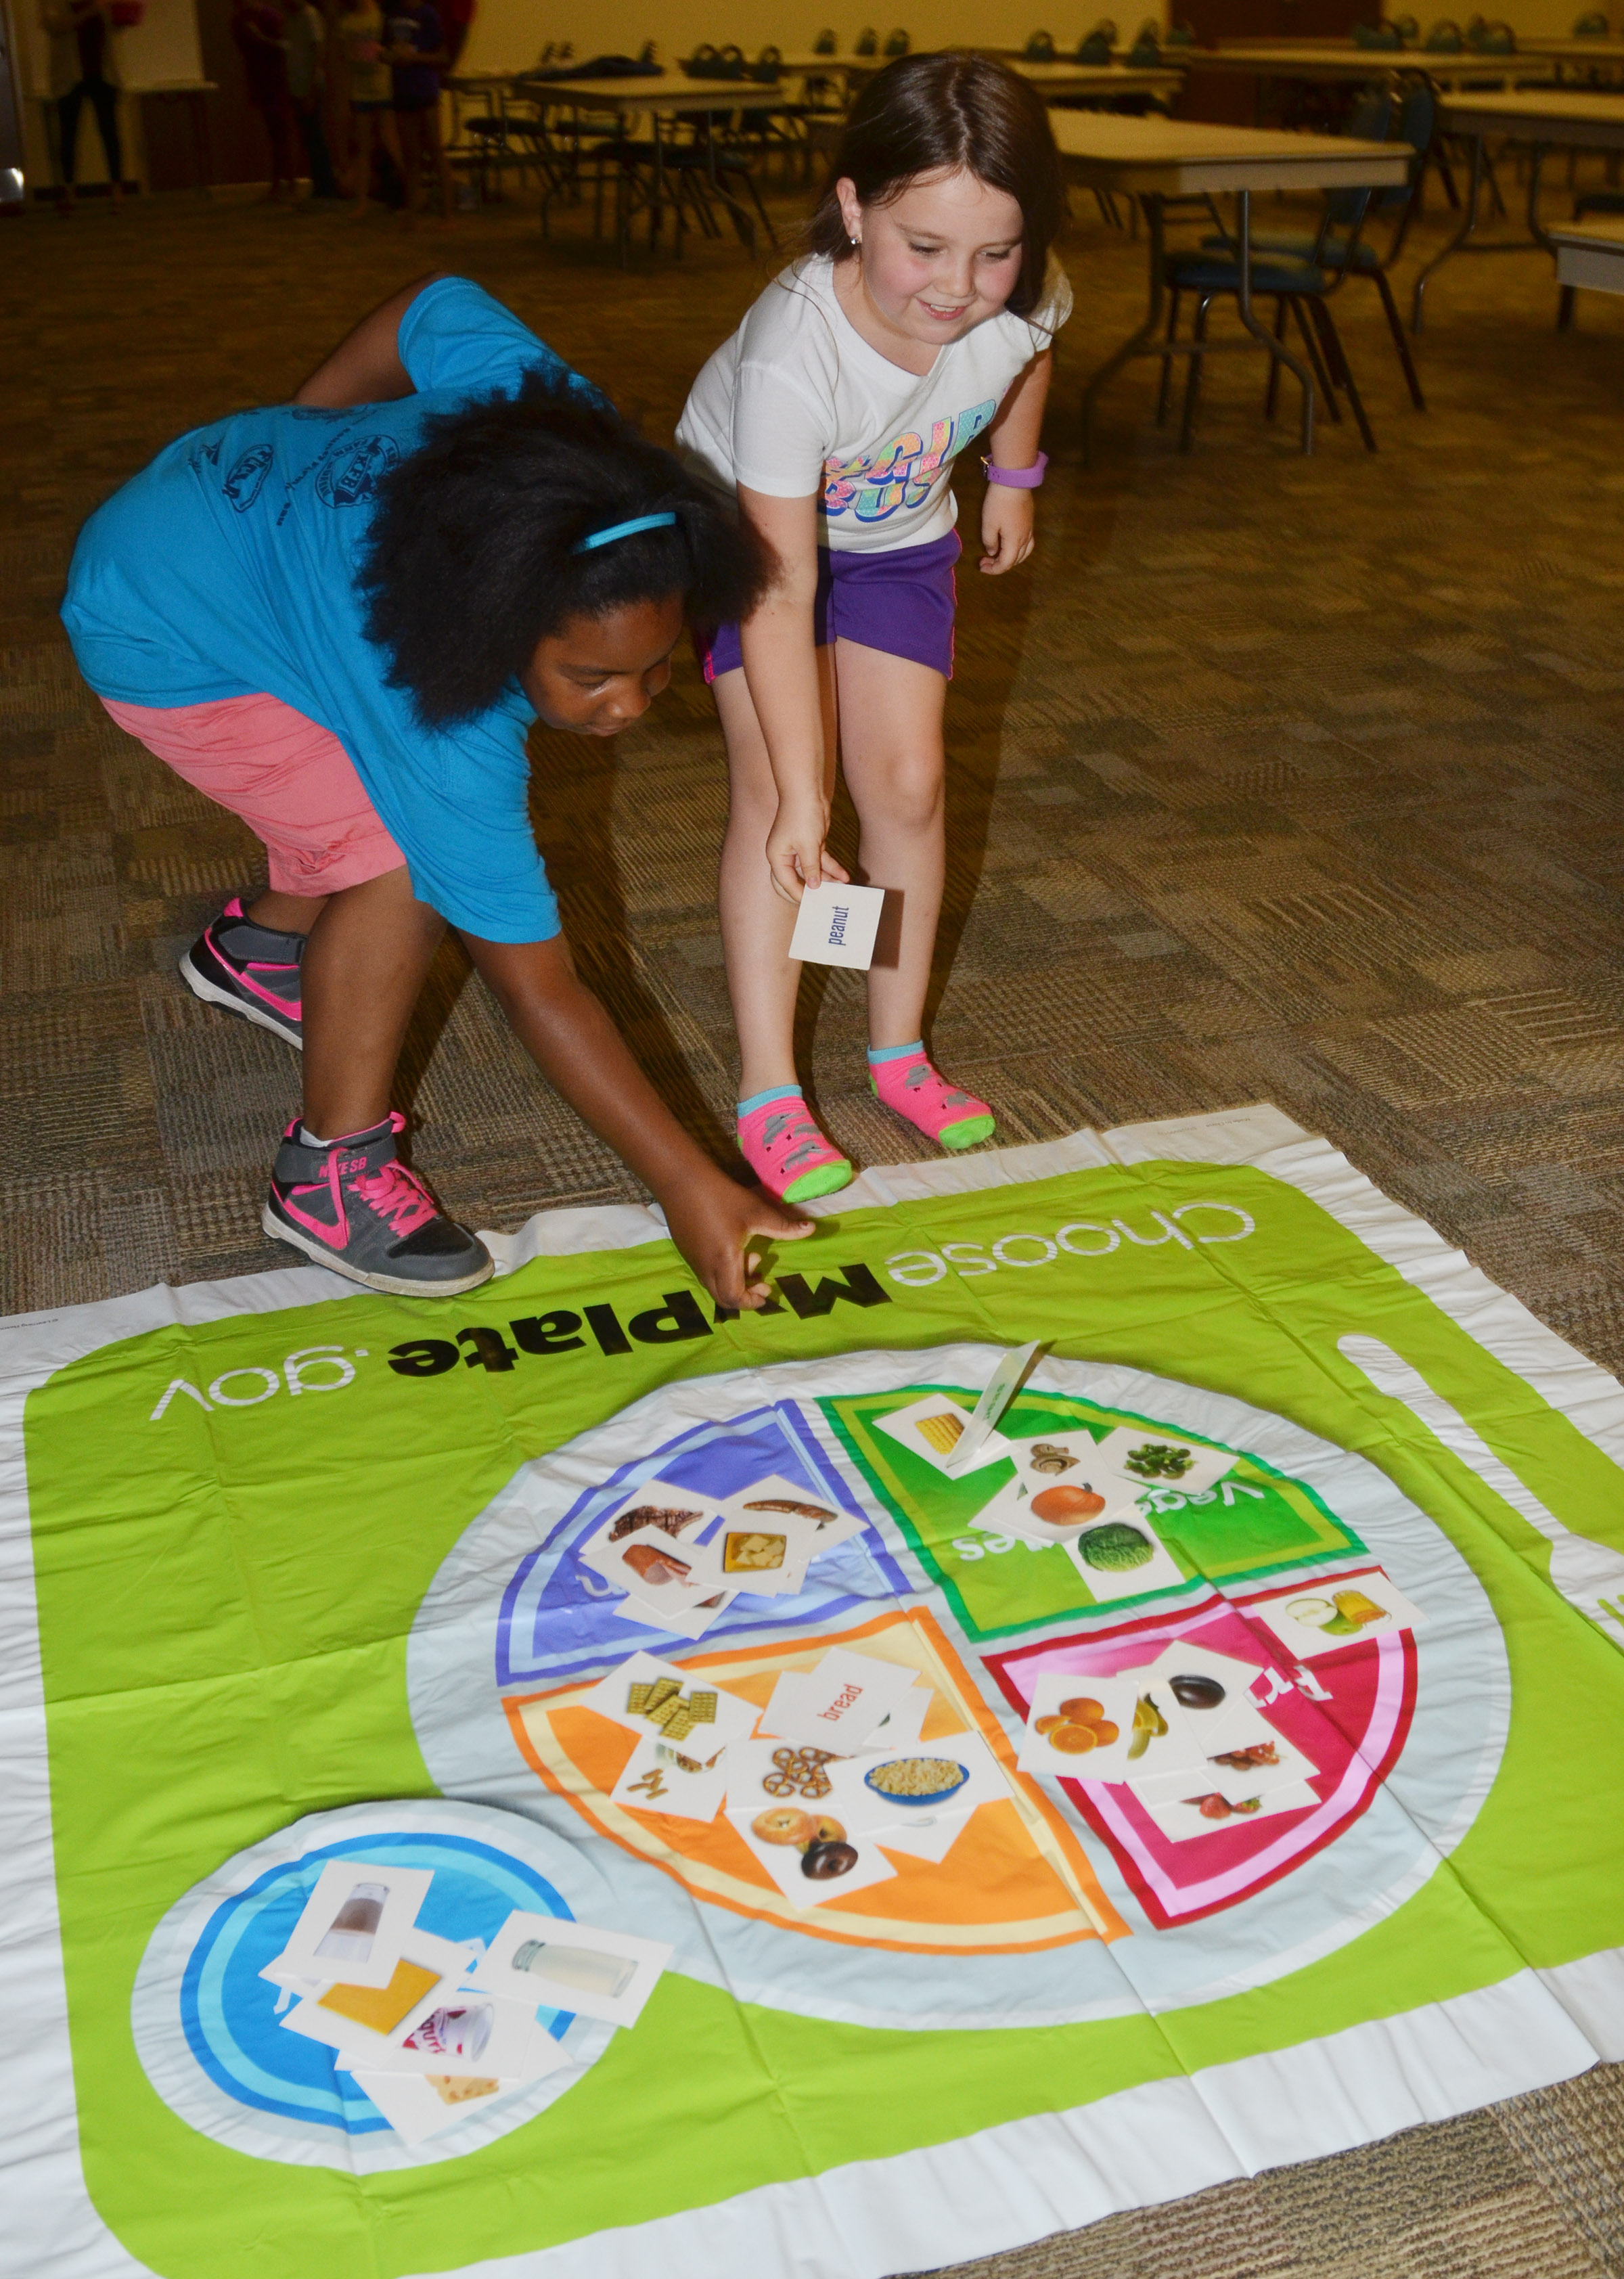 CES third-graders KaMiya Williams, at left, and Maylee Wilds race to place their foods in the correct food groups.